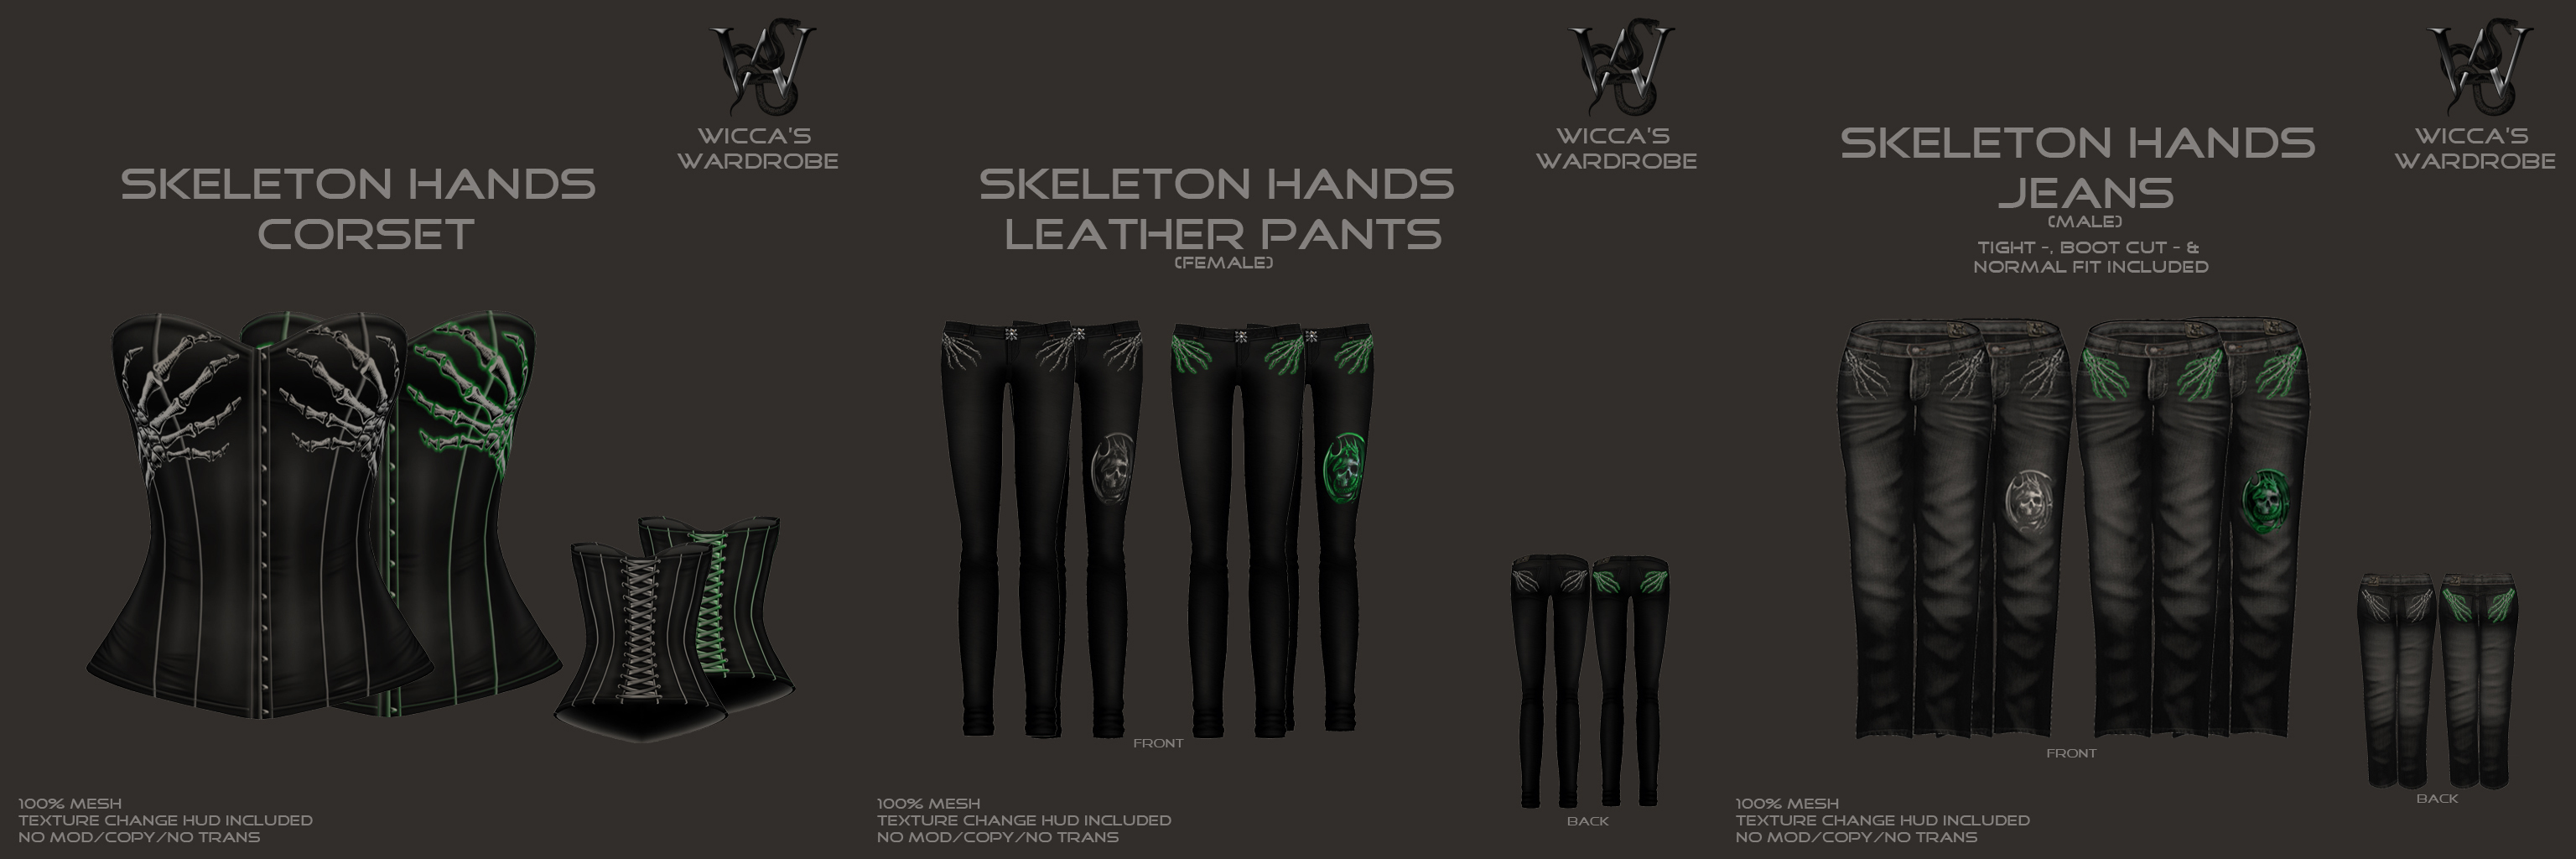 Skeleton Hands Corsets and Pants for Blog